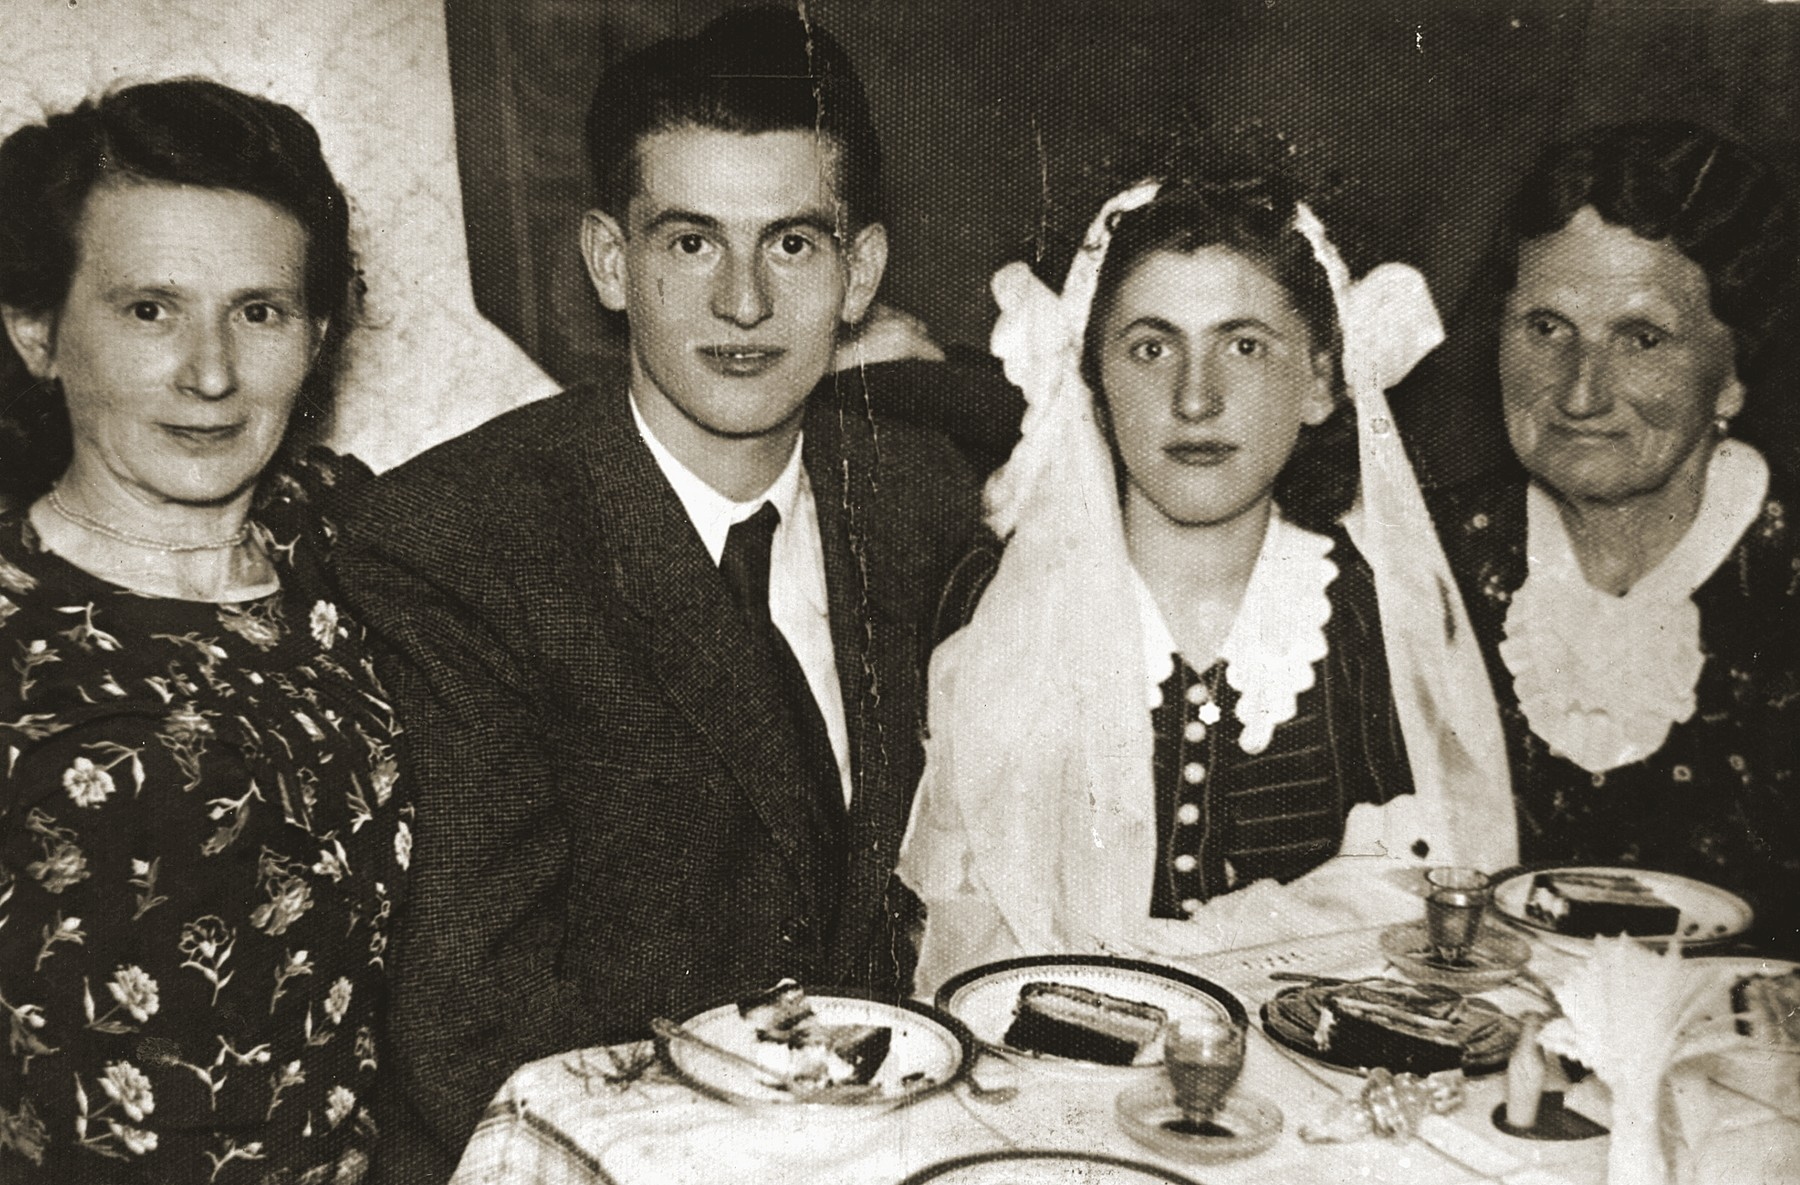 Yaakov and Mania Muszynski celebrate their wedding in the Bedzin ghetto.  Pictured from left to right are Hinda Foxbroomer, Yaakov Muszynski, Miriam Hassenberg Muszynski, and Hana Muszynski.